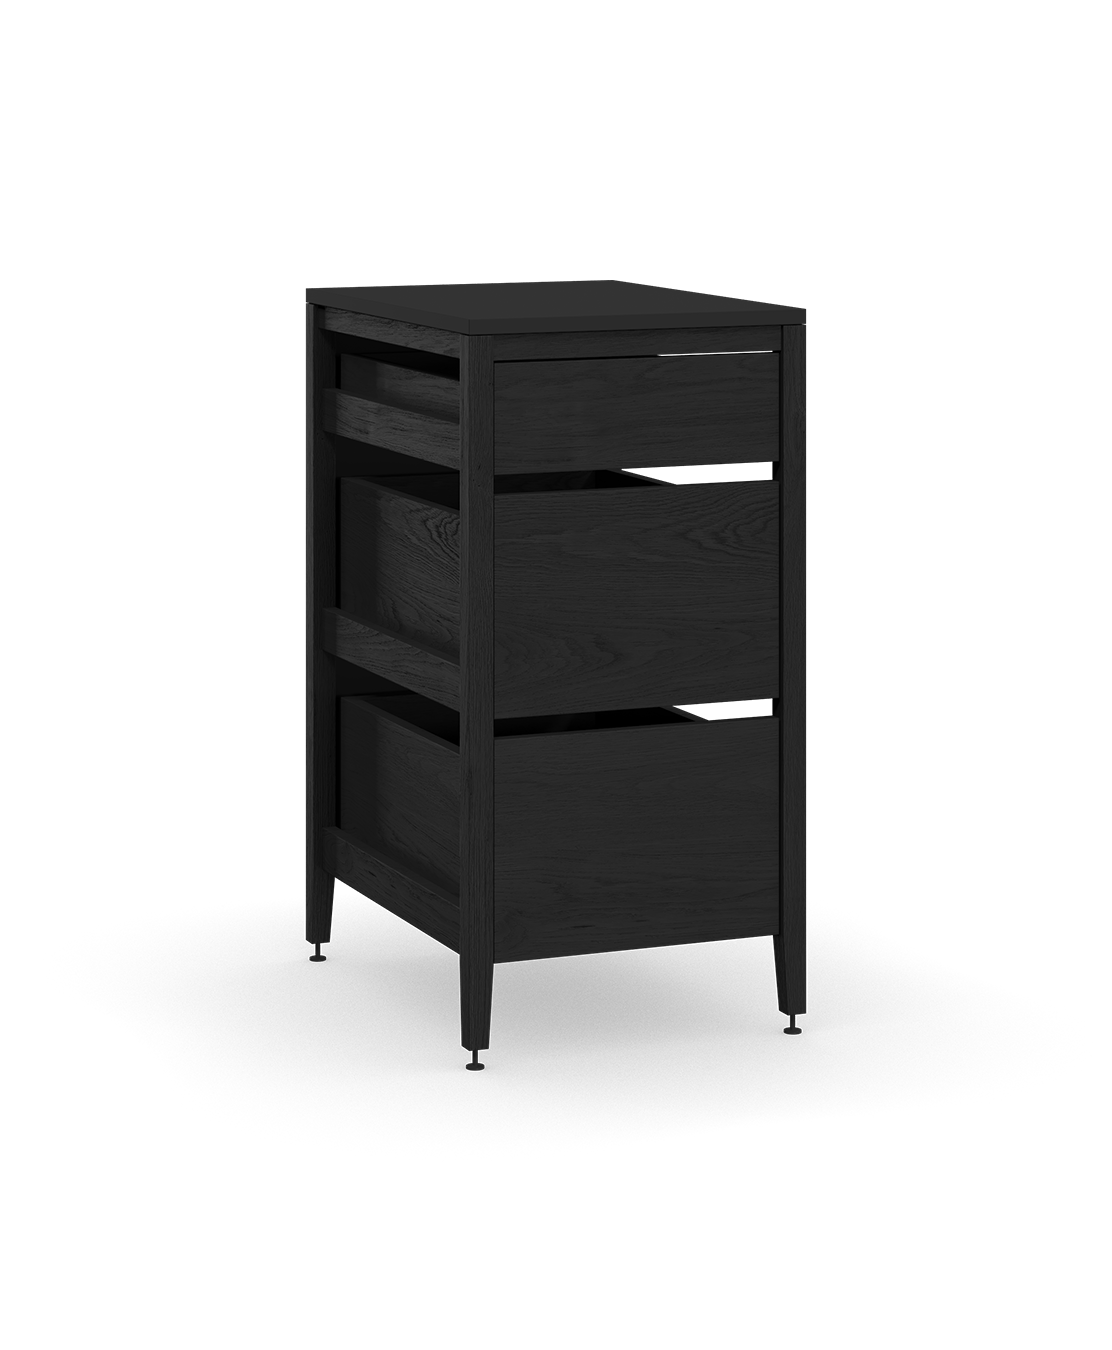 coquo radix midnight black stained oak solid wood modular 3 drawers base kitchen cabinet 21 inch C1-C-21TB-3002-BK